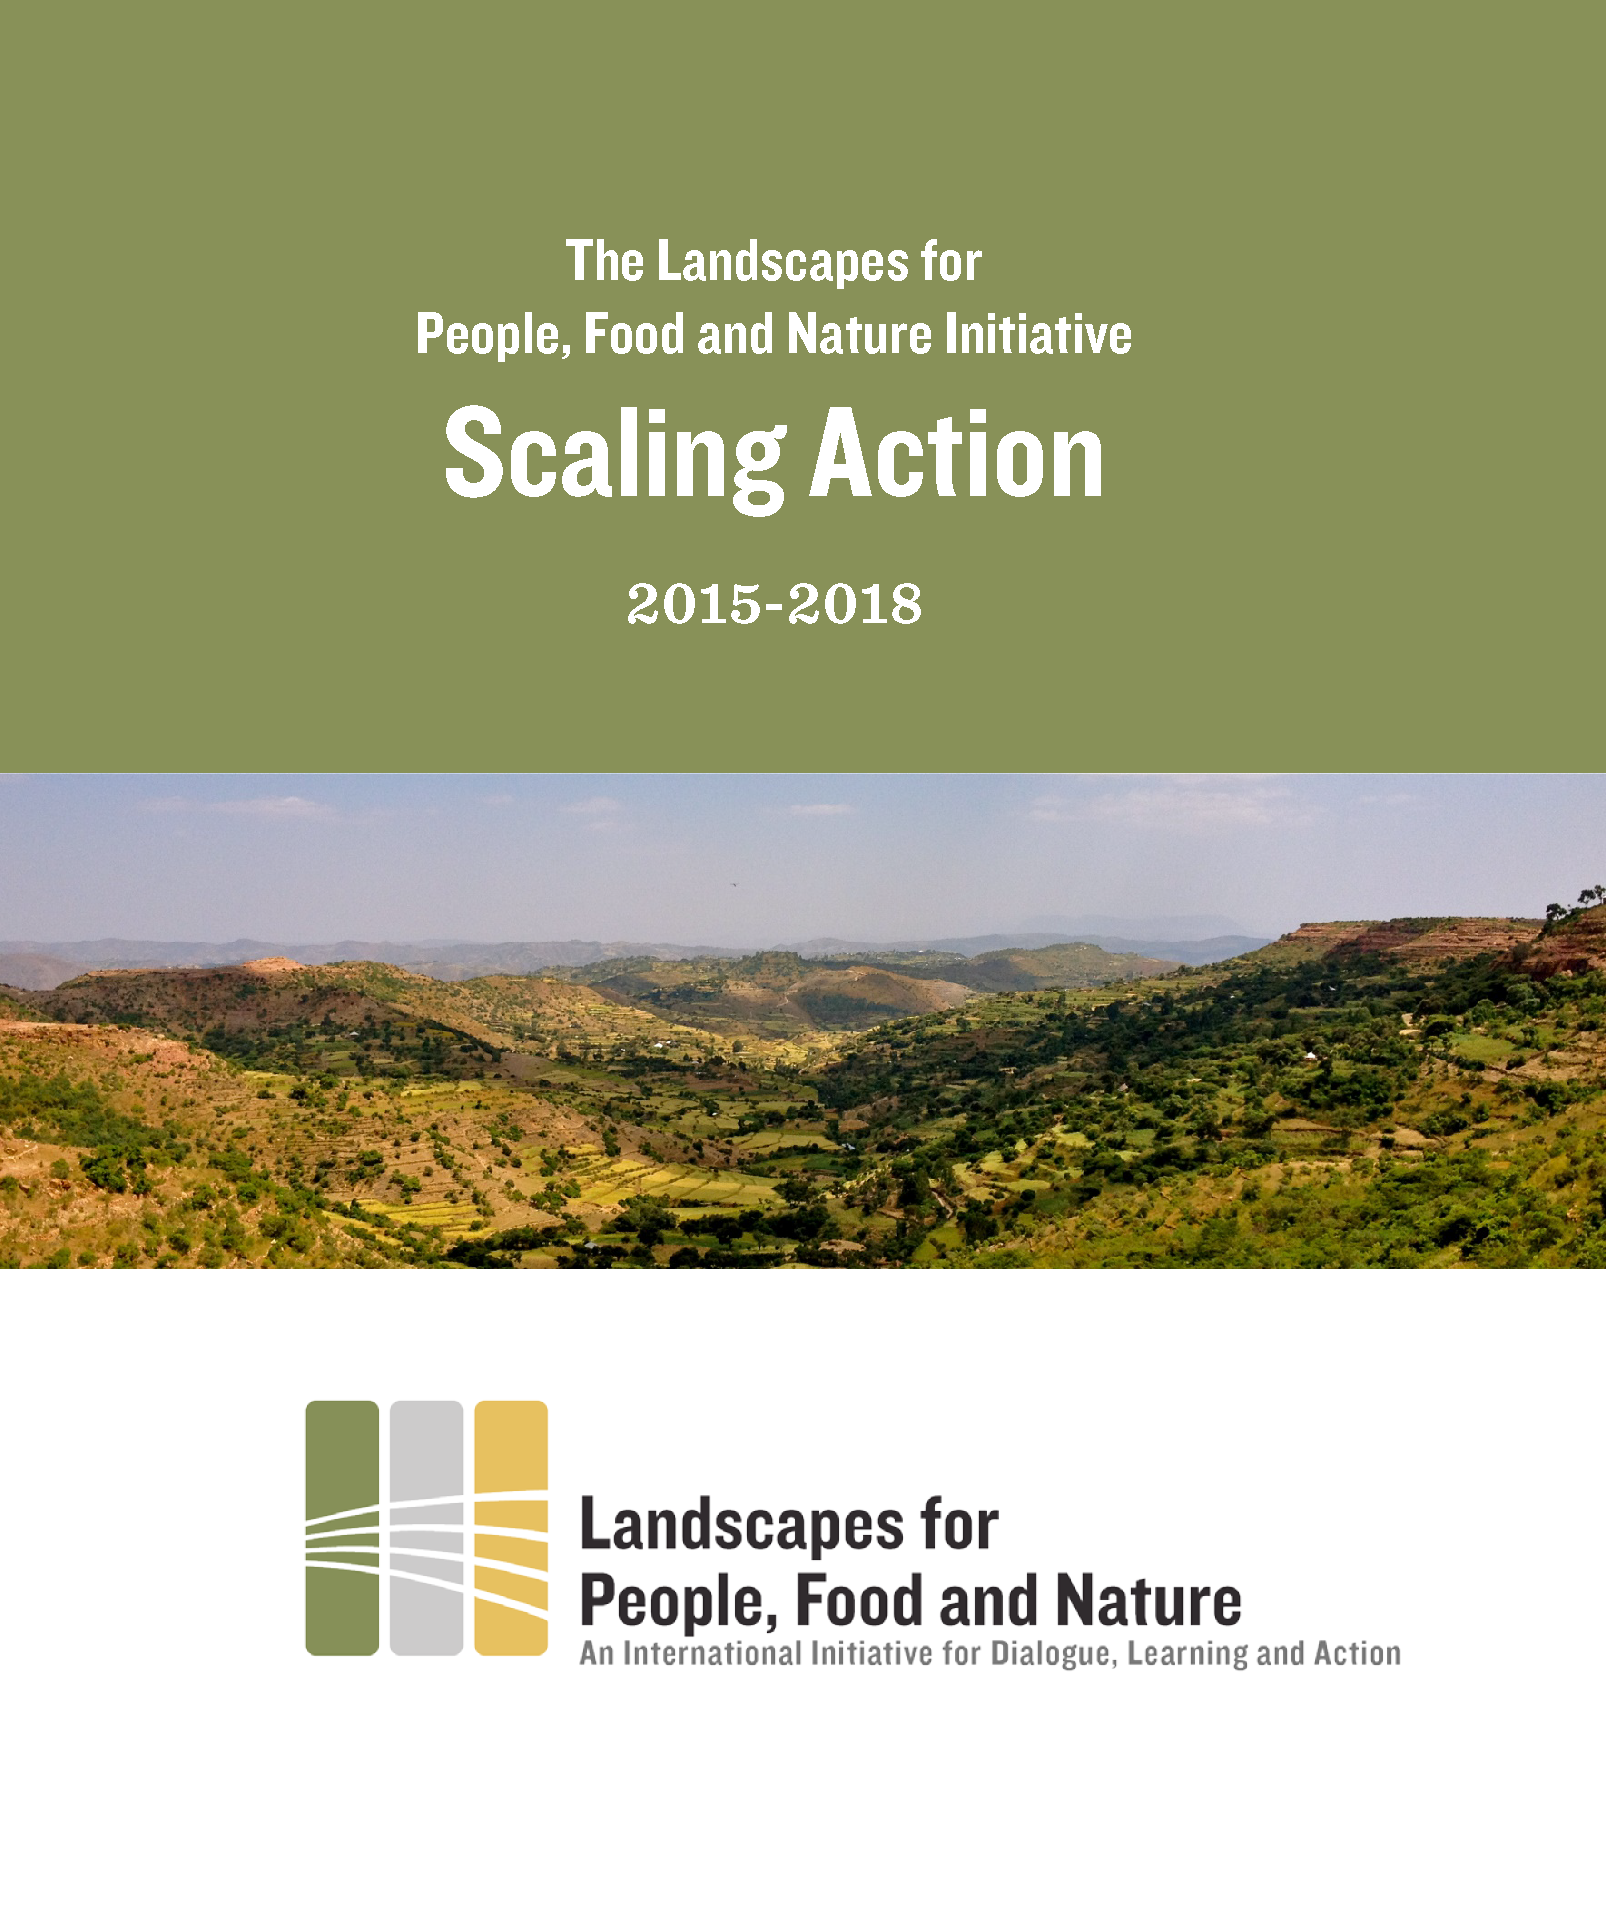 The Landscapes for People, Food and Nature Initiative Scaling Action 2015-2018